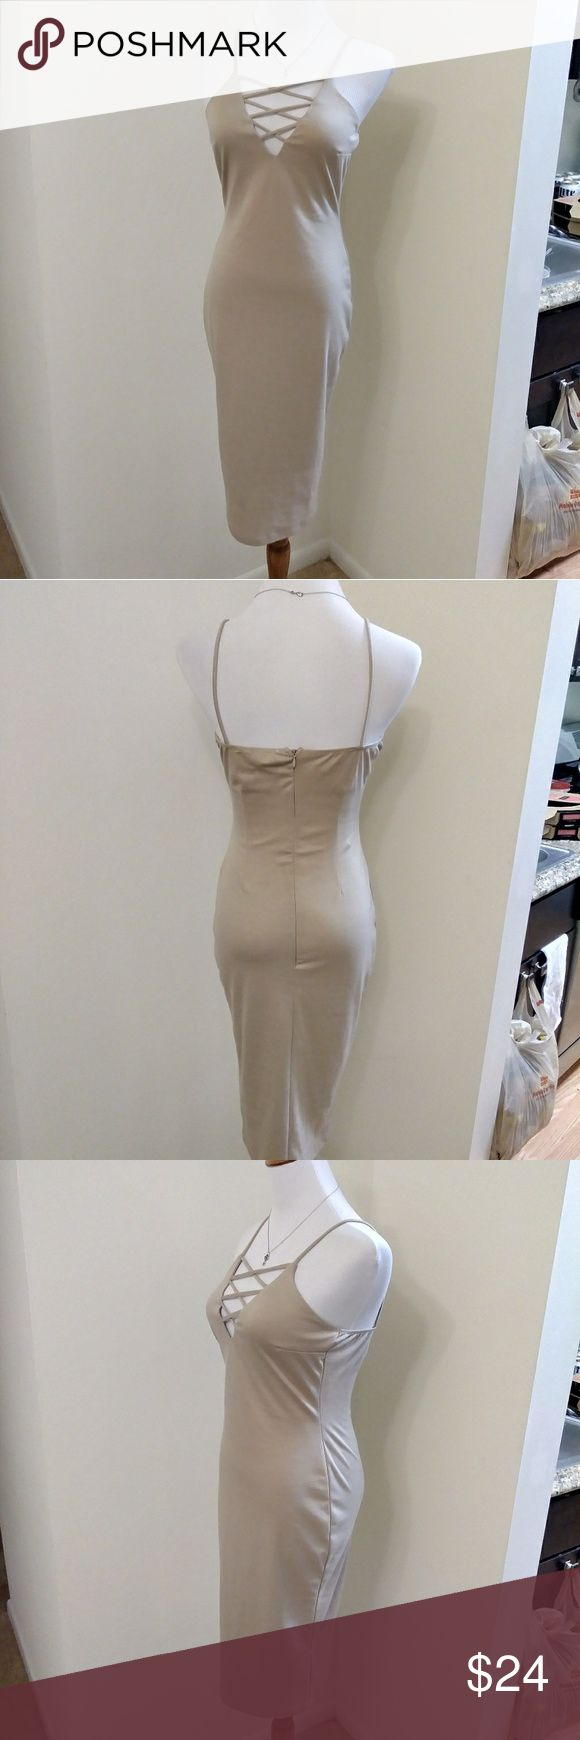 Nude beige lace up cage front bodycon dress 😍😍😍 SUPER sexy nude tan neutral cage front lace up dress. This beige baby is made out of stretchy, curve hugging body con material and oh so fab. It has a zipper from lower back to top on the backside and spaghetti straps. From Charlotte Russe and tagged a size small - in my opinion could fit an extra small to a medium. This dress is perfect for going out with no bra. Very stretchy but not thin. Holds up the girls great! 😉 Message me for…